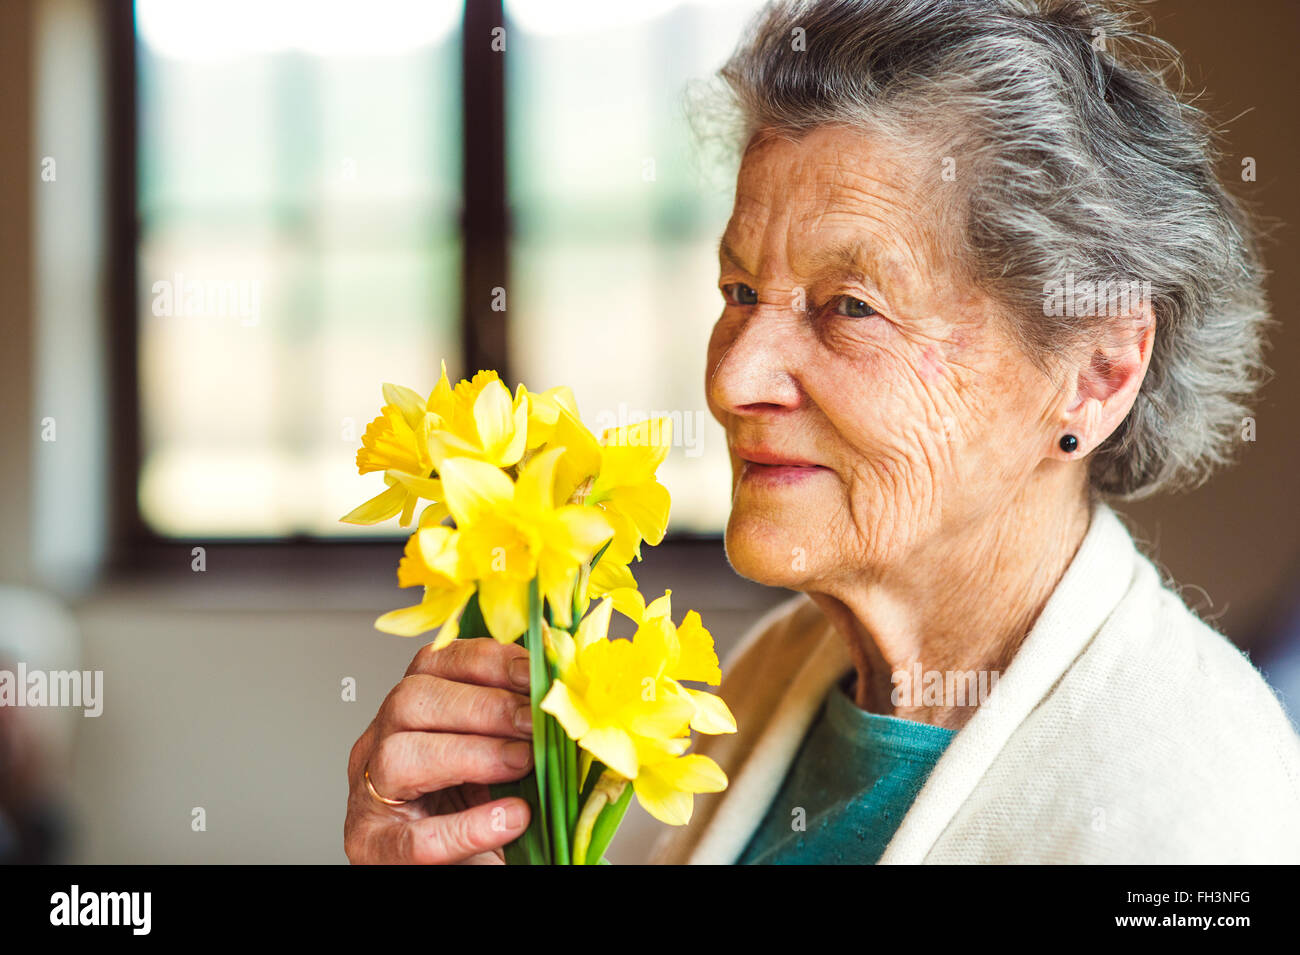 Senior woman by the window holding bouquet of daffodils - Stock Image